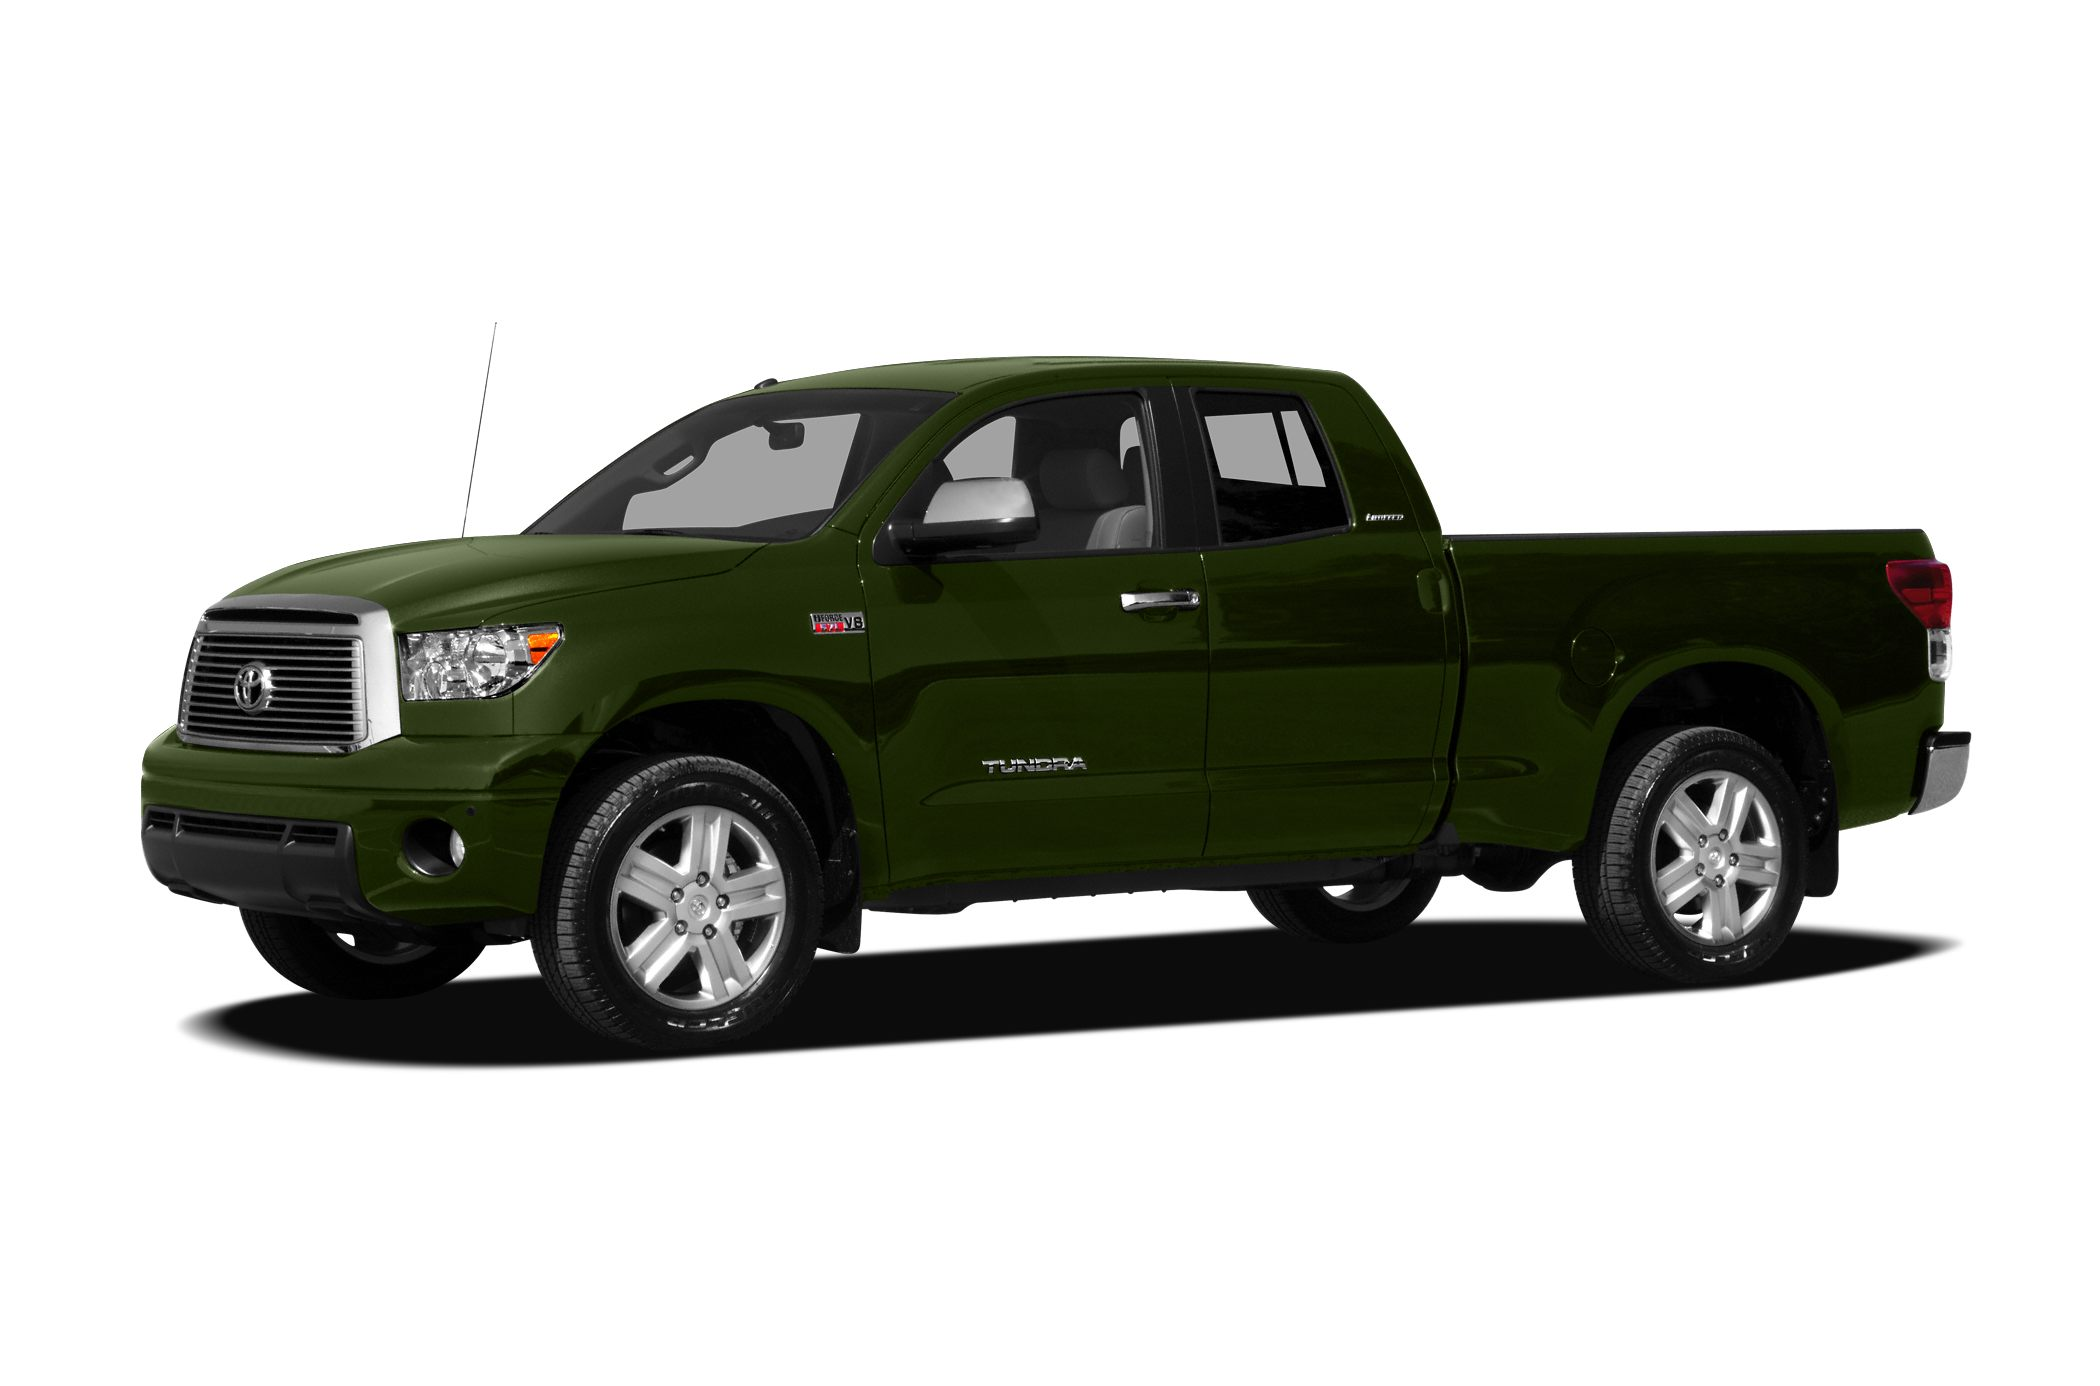 2010 Toyota Tundra Grade This 2010 Toyota Tundra 4dr Dbl 46L V8 6-Speed Automatic features a 46L